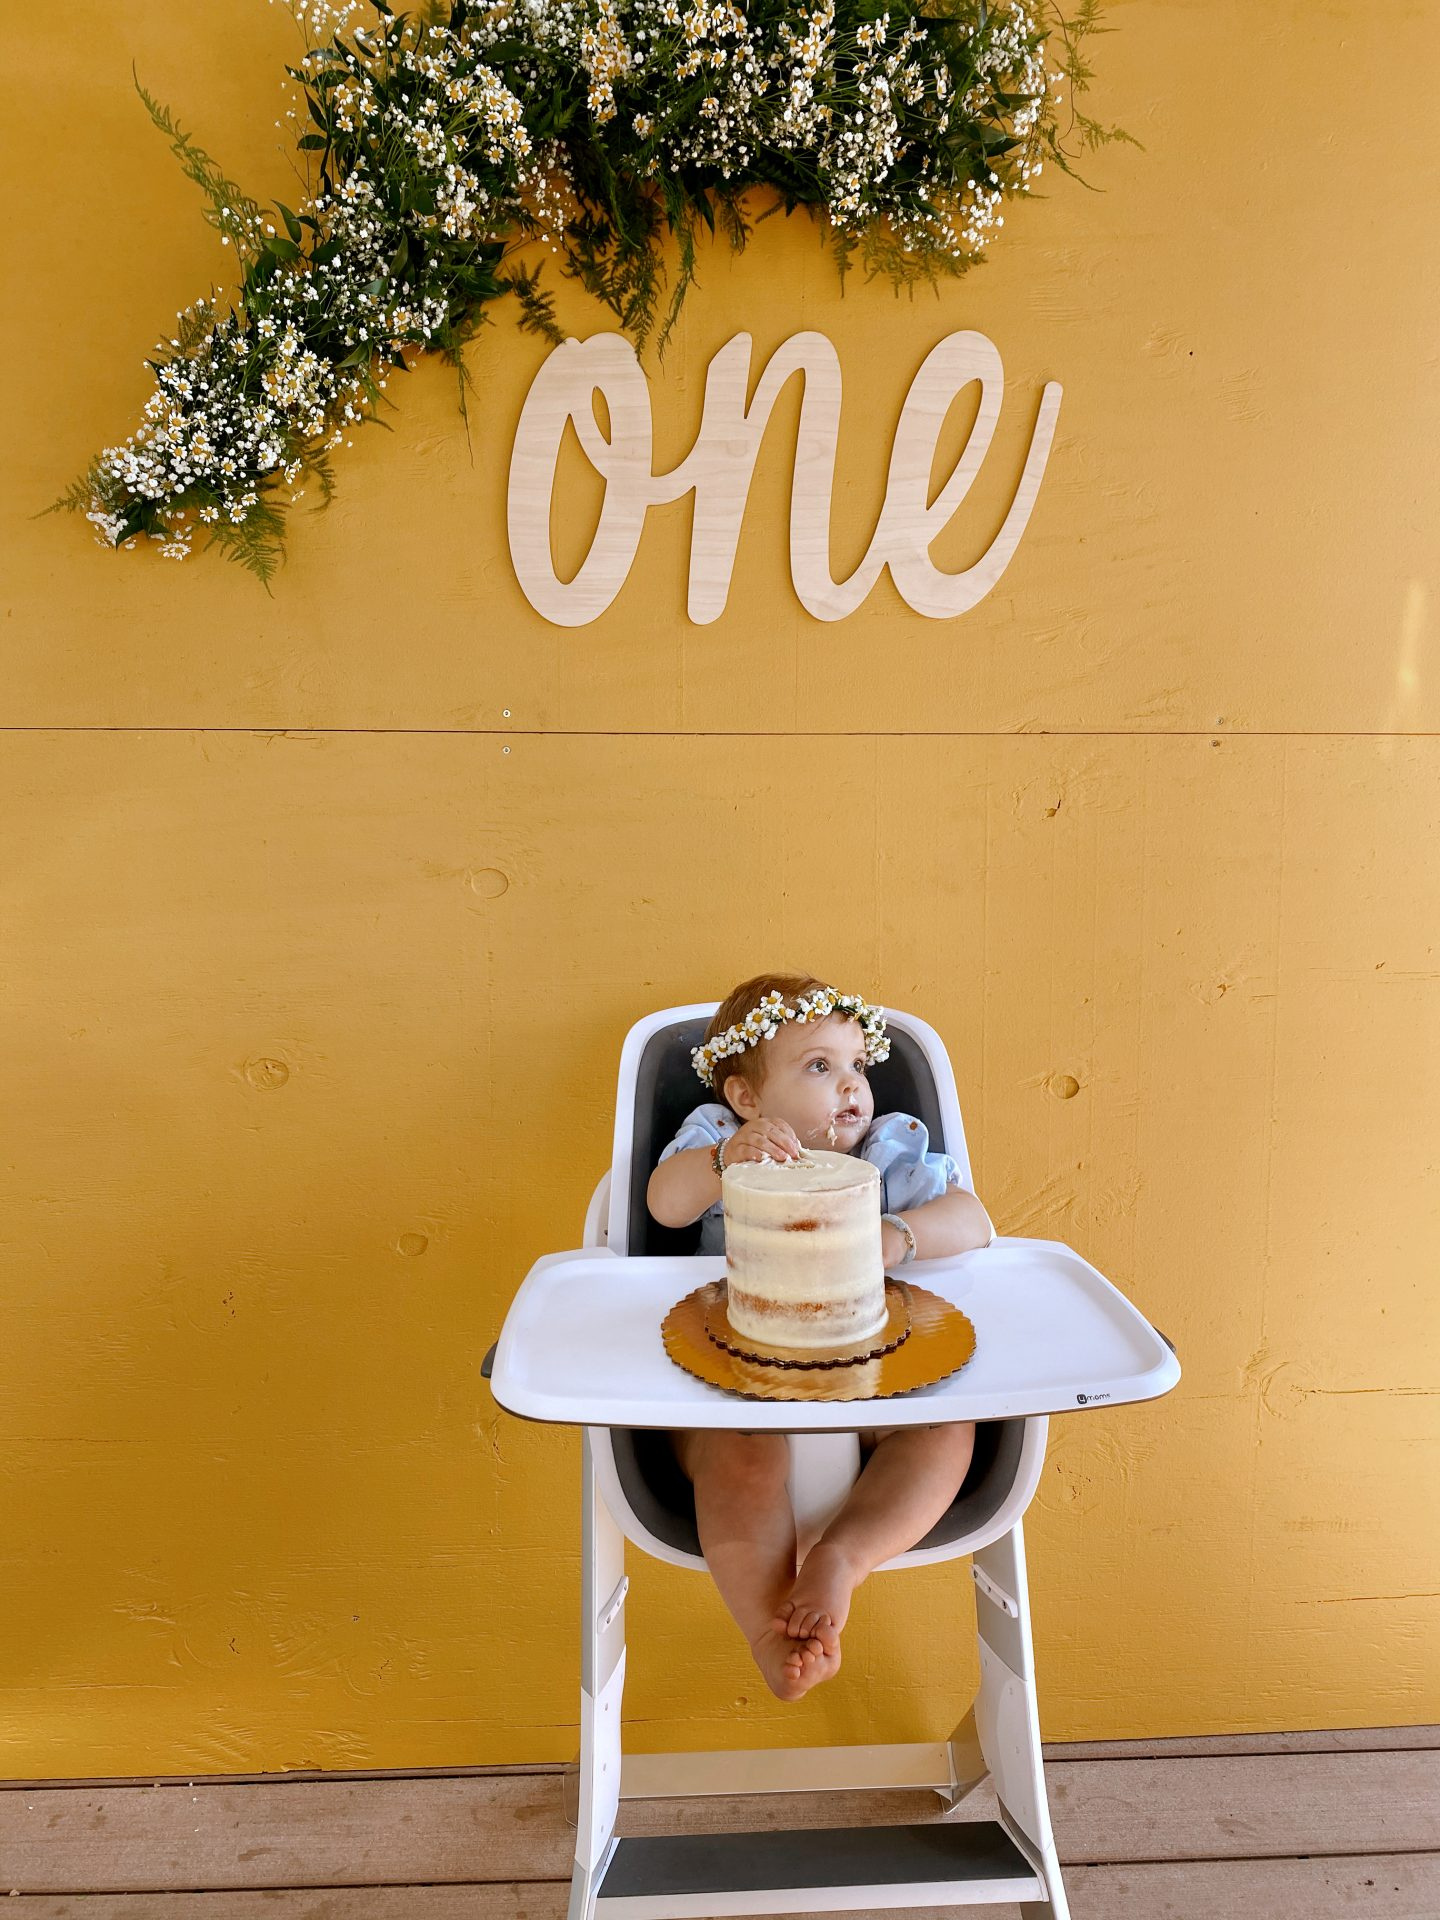 Daisy Theme Party by popular San Diego lifestyle blog, Navy Grace: image of a baby wearing a blue daisy print Zara dress and Briar Baby HONEY BEAR bonnet while sitting in a high chair eating a tiered birthday cake in front of a mustard yellow backdrop with a wooden one sign and a daisy garland.